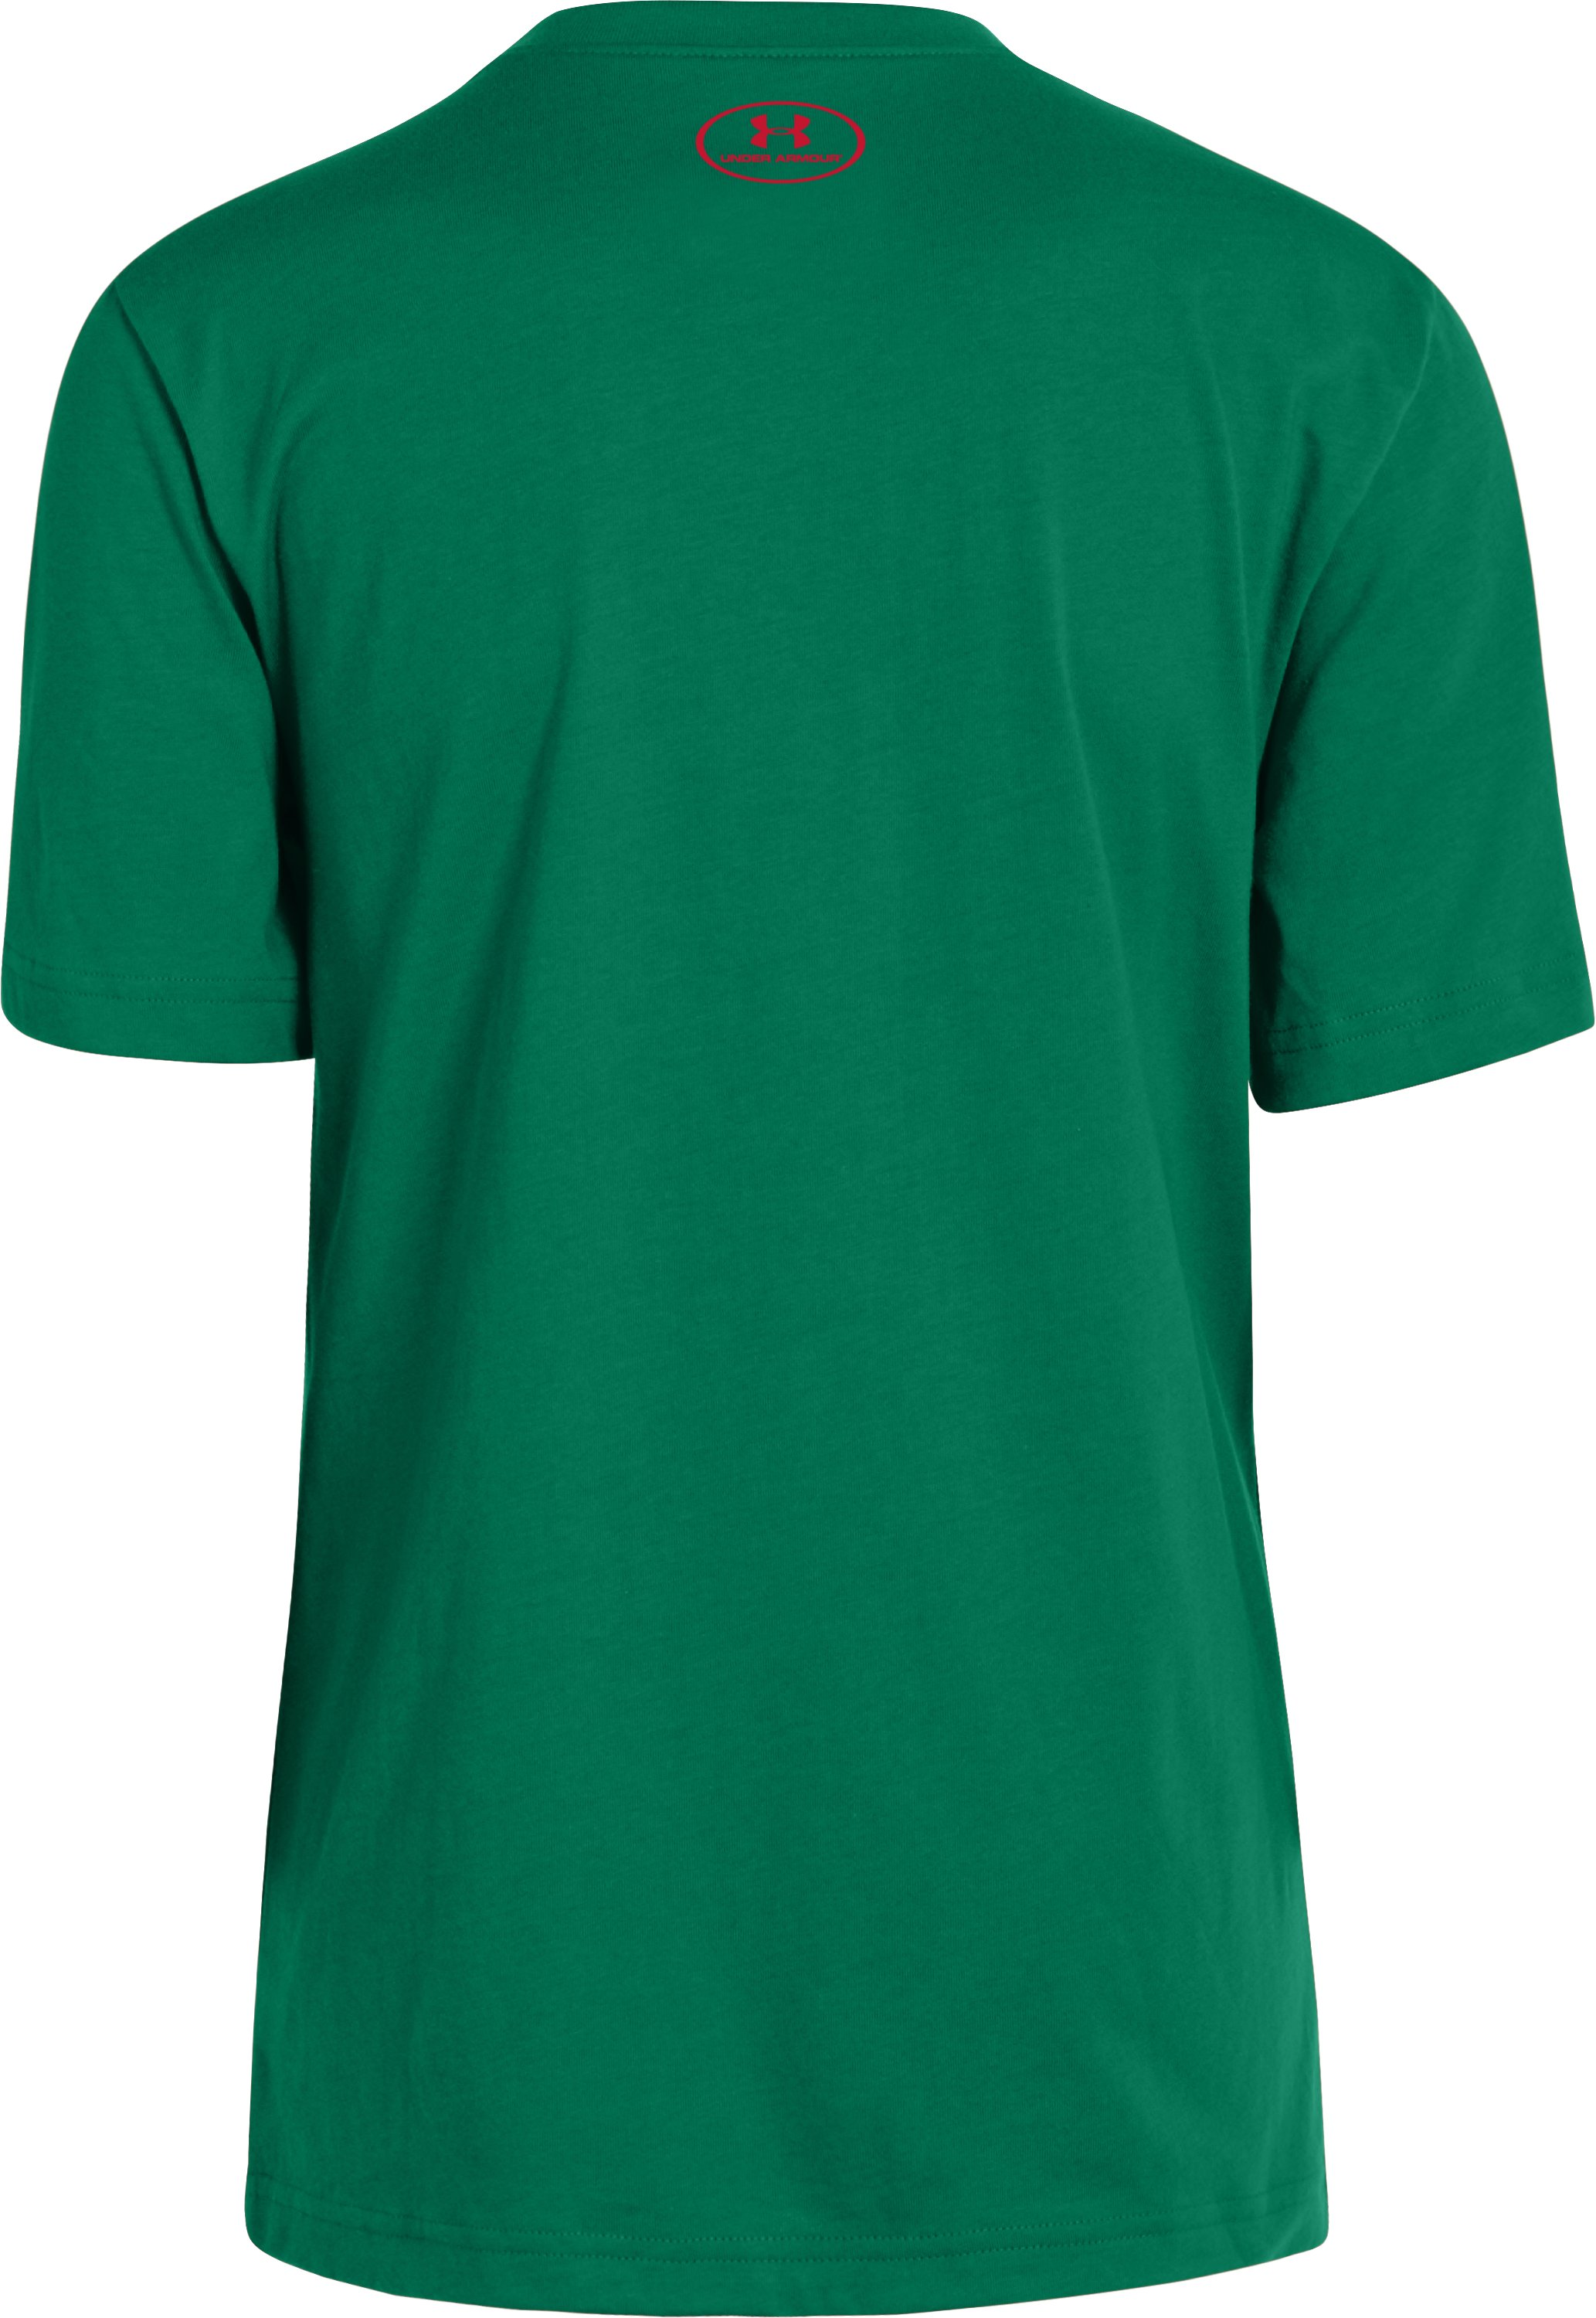 Boys' Mexico Under Armour® Alter Ego Superman T-Shirt, Classic Green